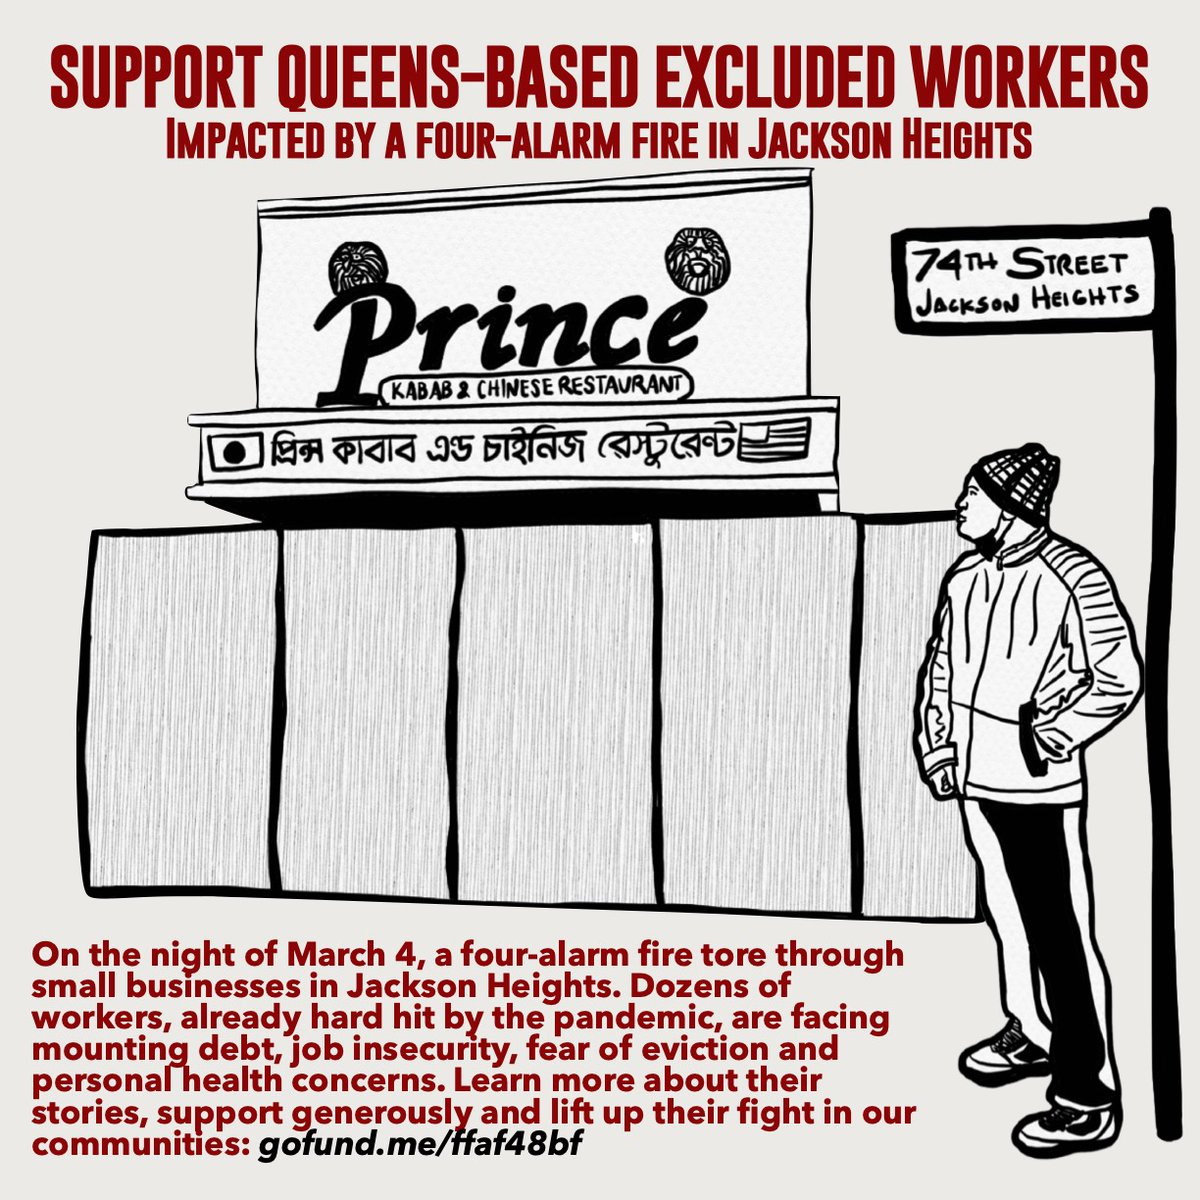 While the #FundExcludedWorkers campaign has been a victory, the day-to-day challenges of survival continues. Read the story of DRUM member, AS. Support + contribute directly to Queens-based excluded workers + small businesses: gofund.me/ffaf48bf #LiftUpOurCommunities